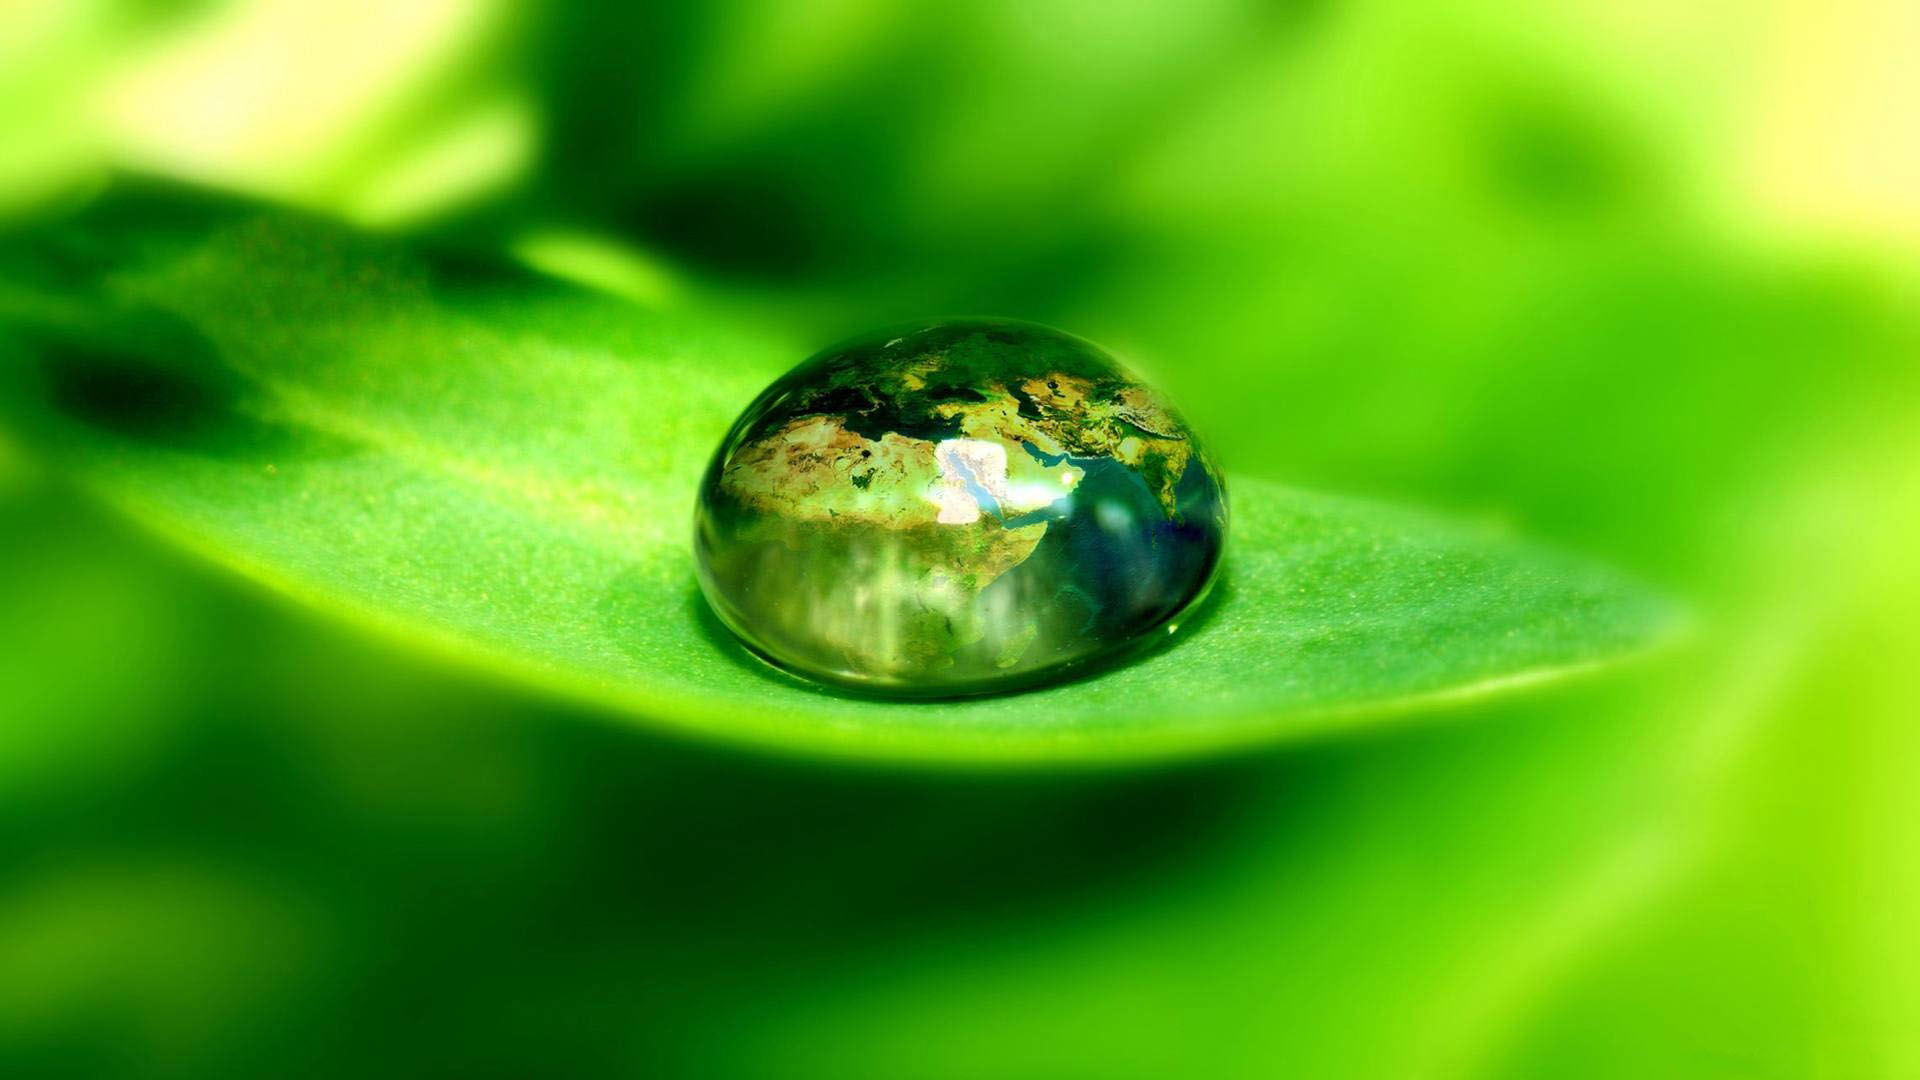 water drop on leaf wallpaper background images wallpapers